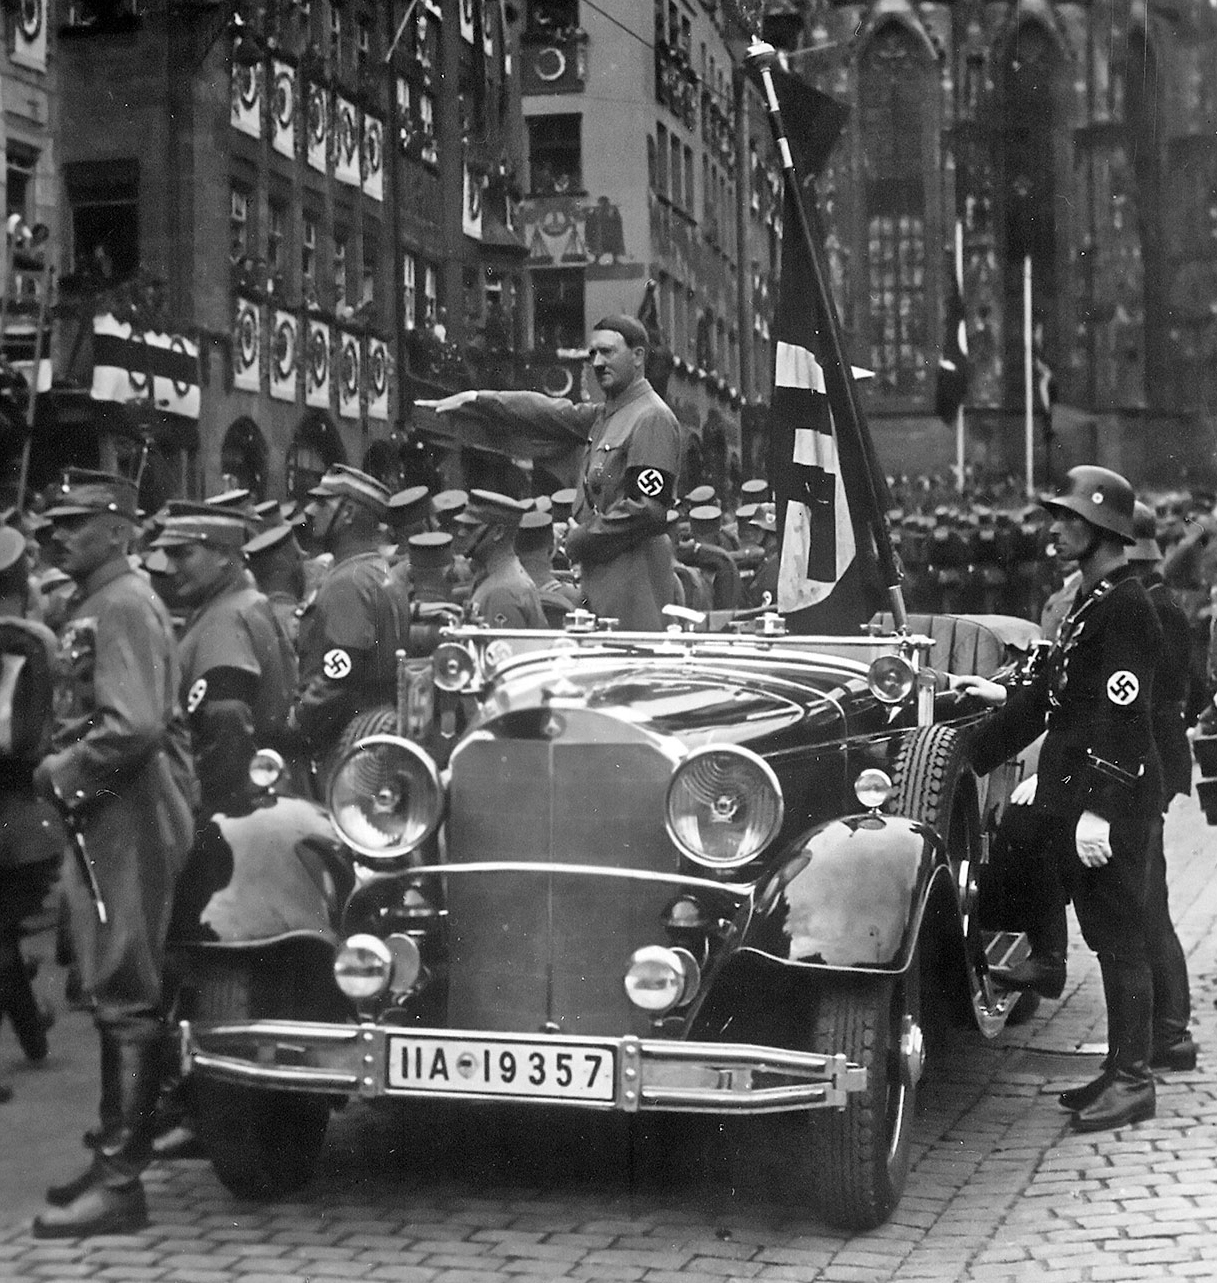 http://upload.wikimedia.org/wikipedia/commons/6/60/Hitler_N%C3%BCrnberg_1935.jpg